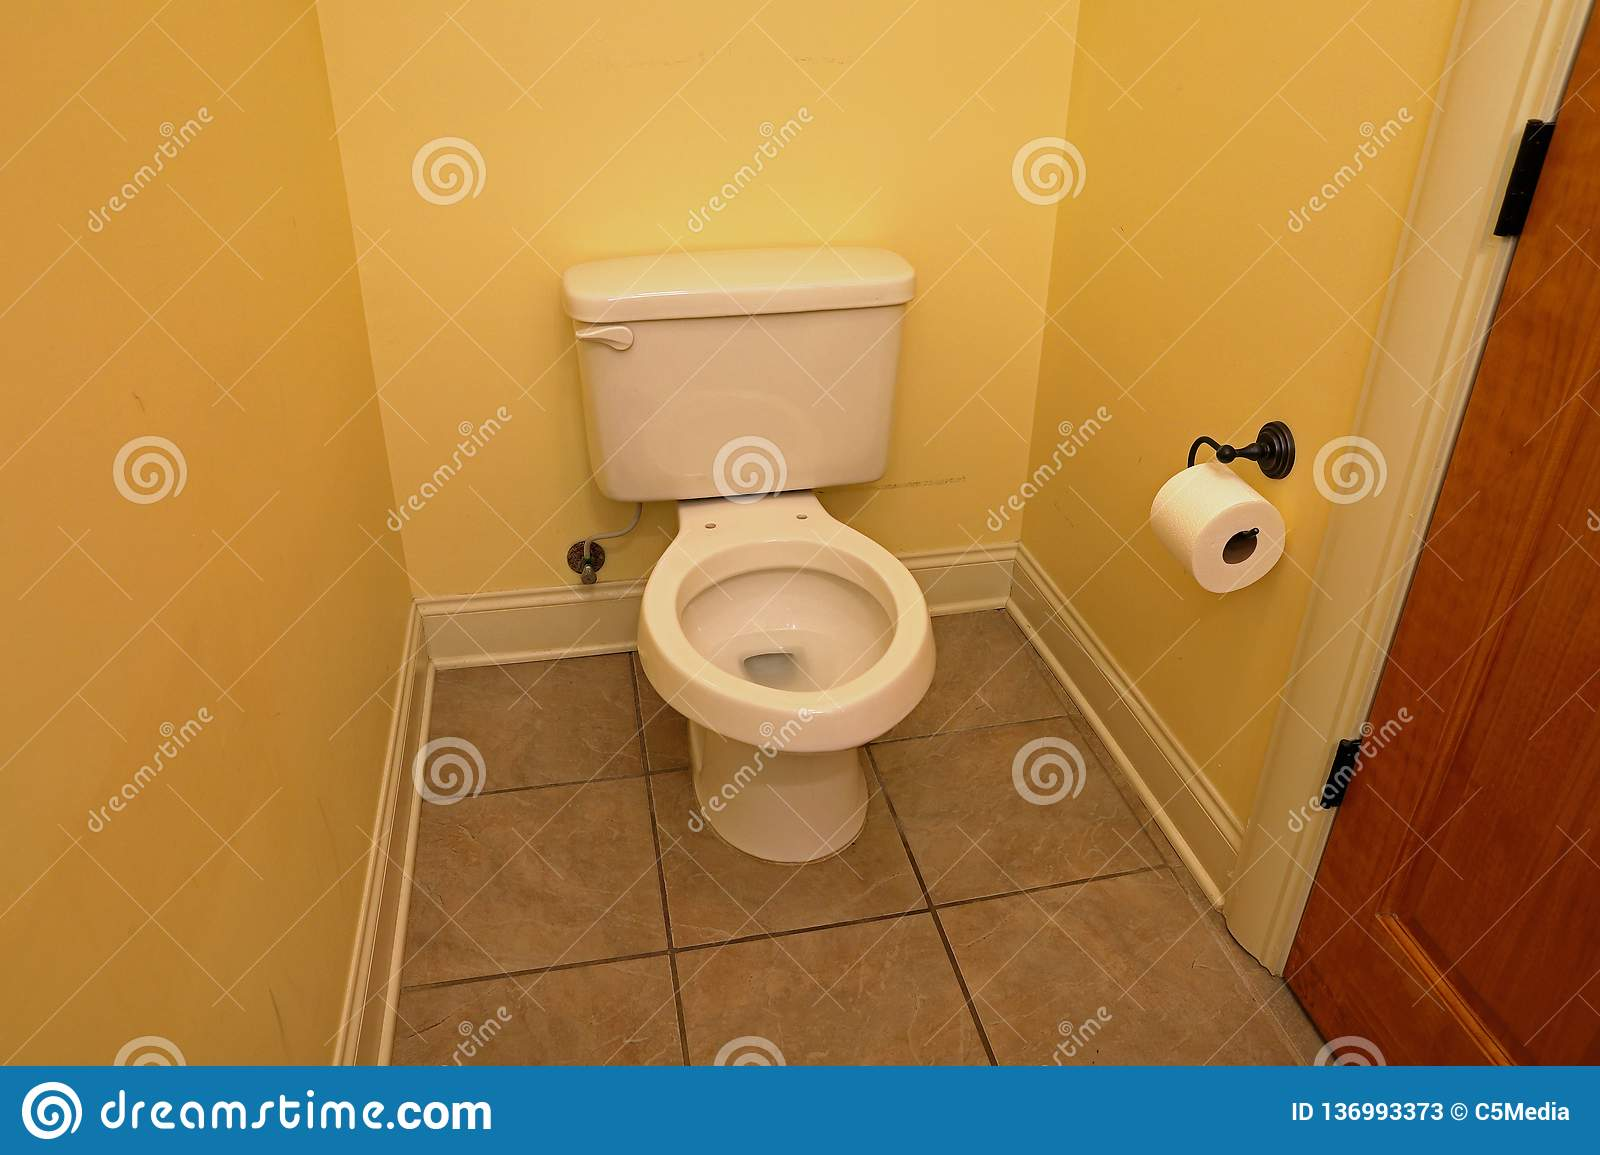 Toilet with seat removed. Toilet with no seat, in small home bathroom stock photos